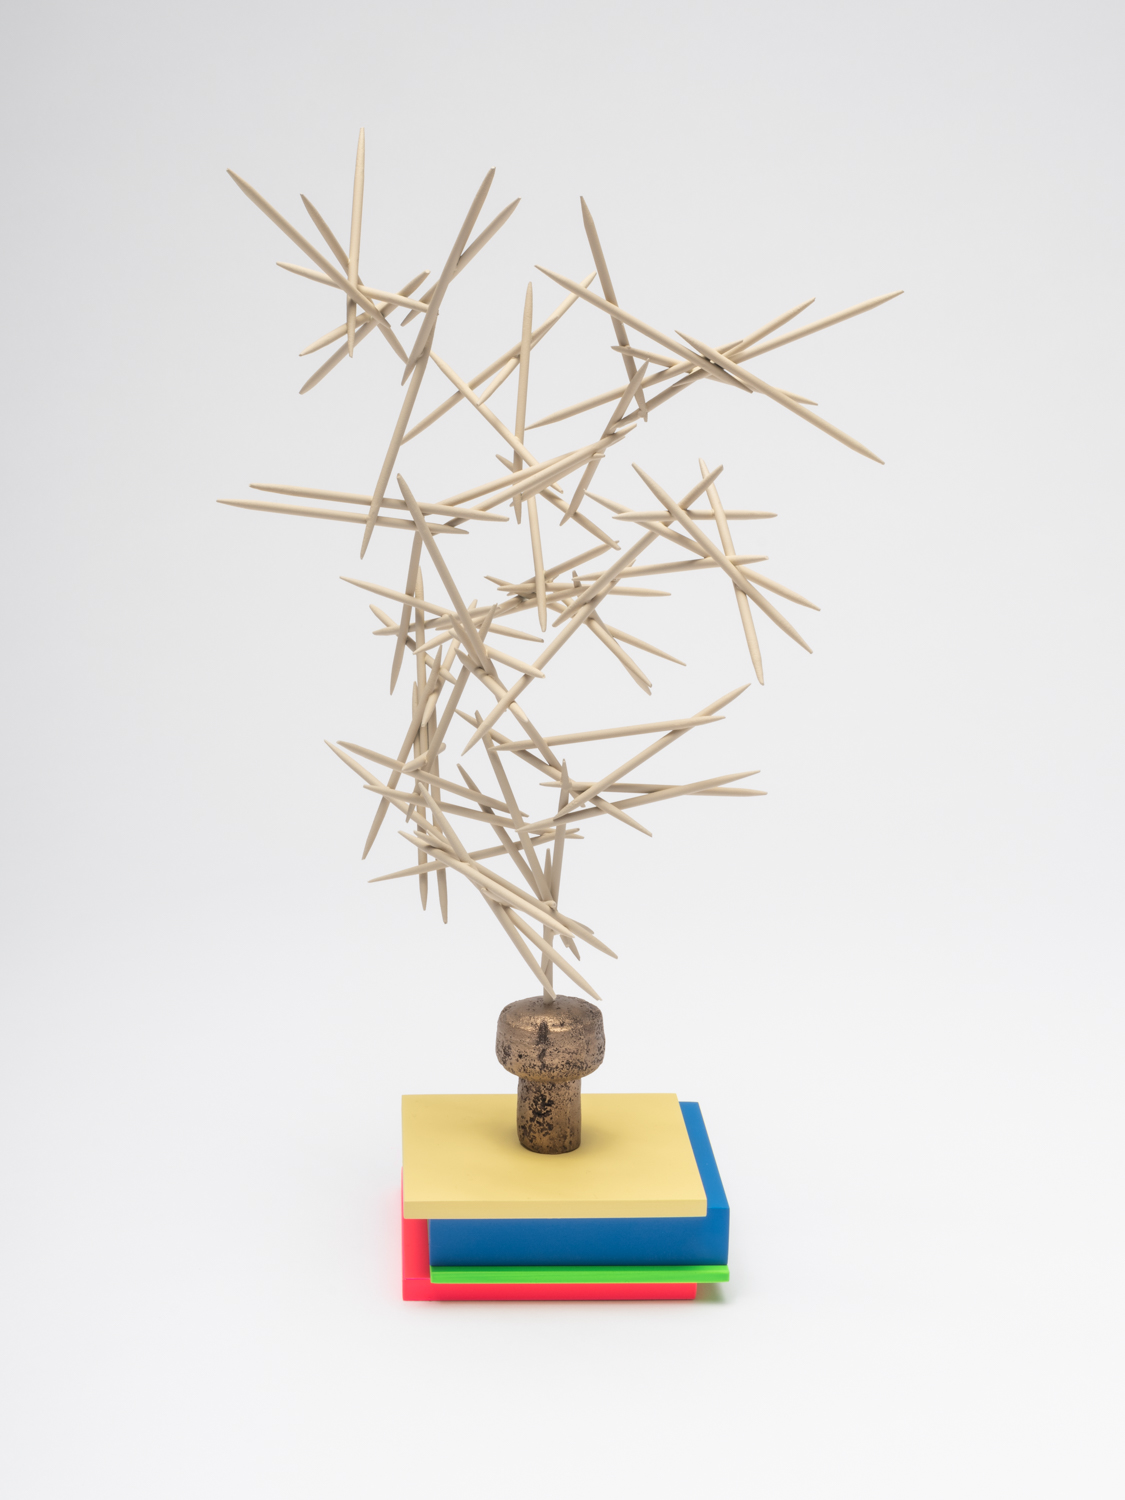 Chris Bradley  Mnemonic (Post-It)  2018 Painted steel, cast bronze, aluminum, and enamel paint 12h x 7w x 7d in CB273